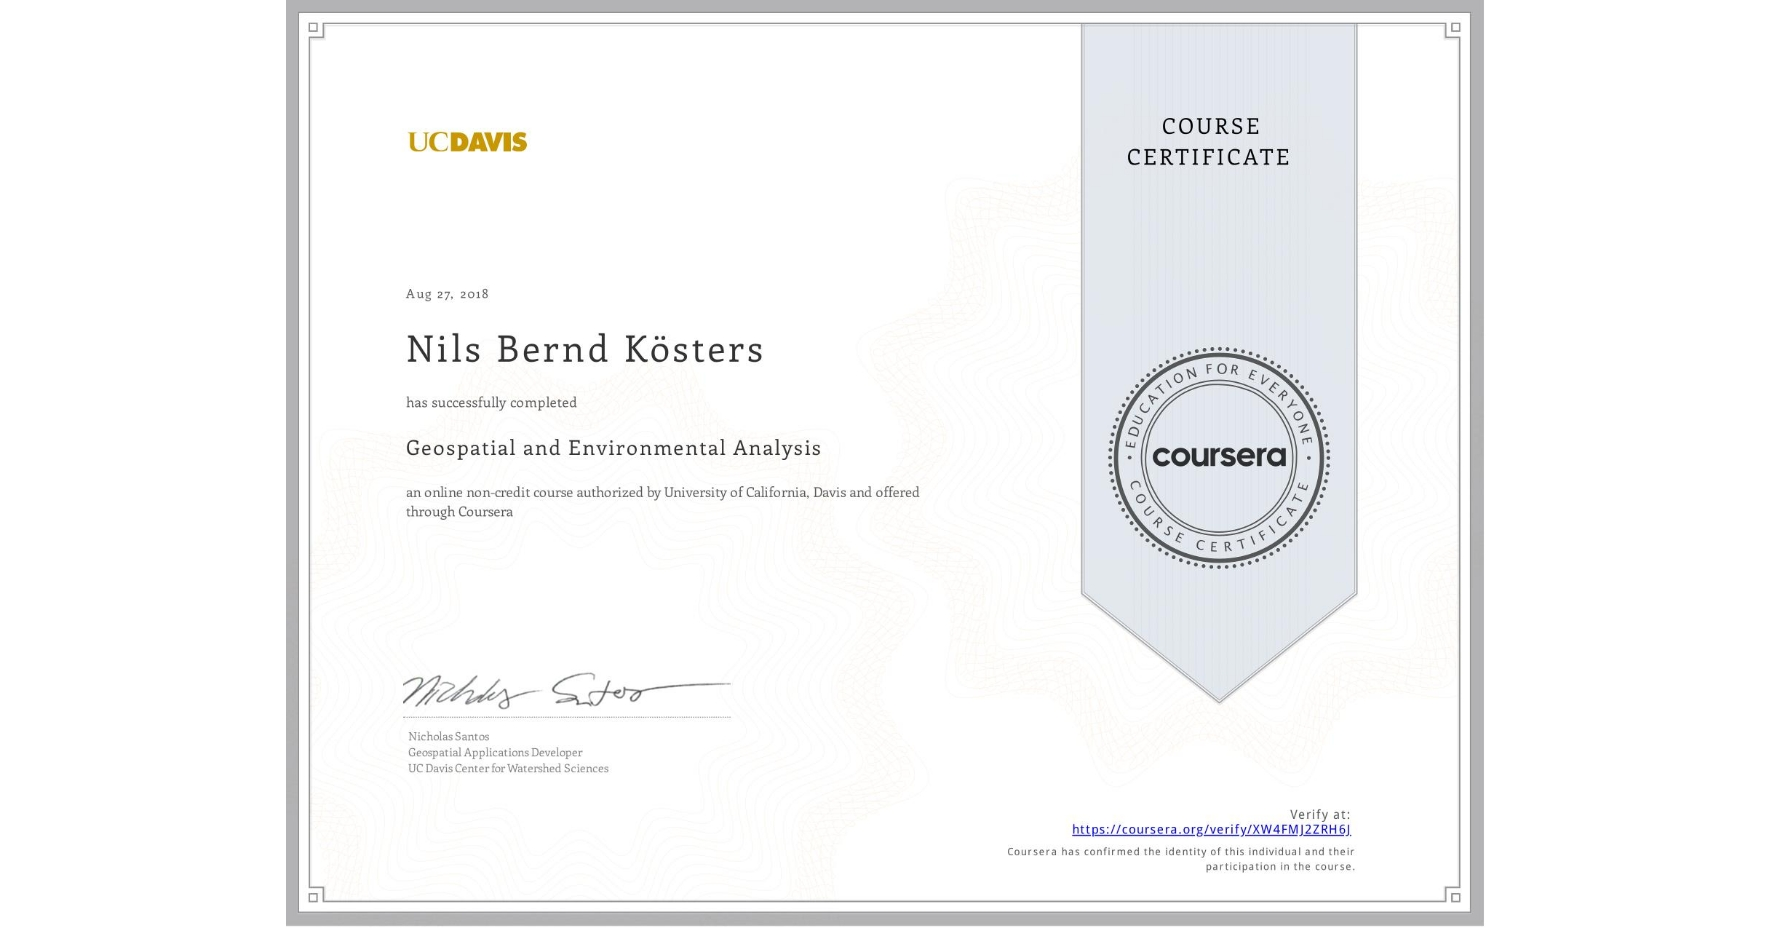 View certificate for Nils Bernd Kösters, Geospatial and Environmental Analysis, an online non-credit course authorized by University of California, Davis and offered through Coursera